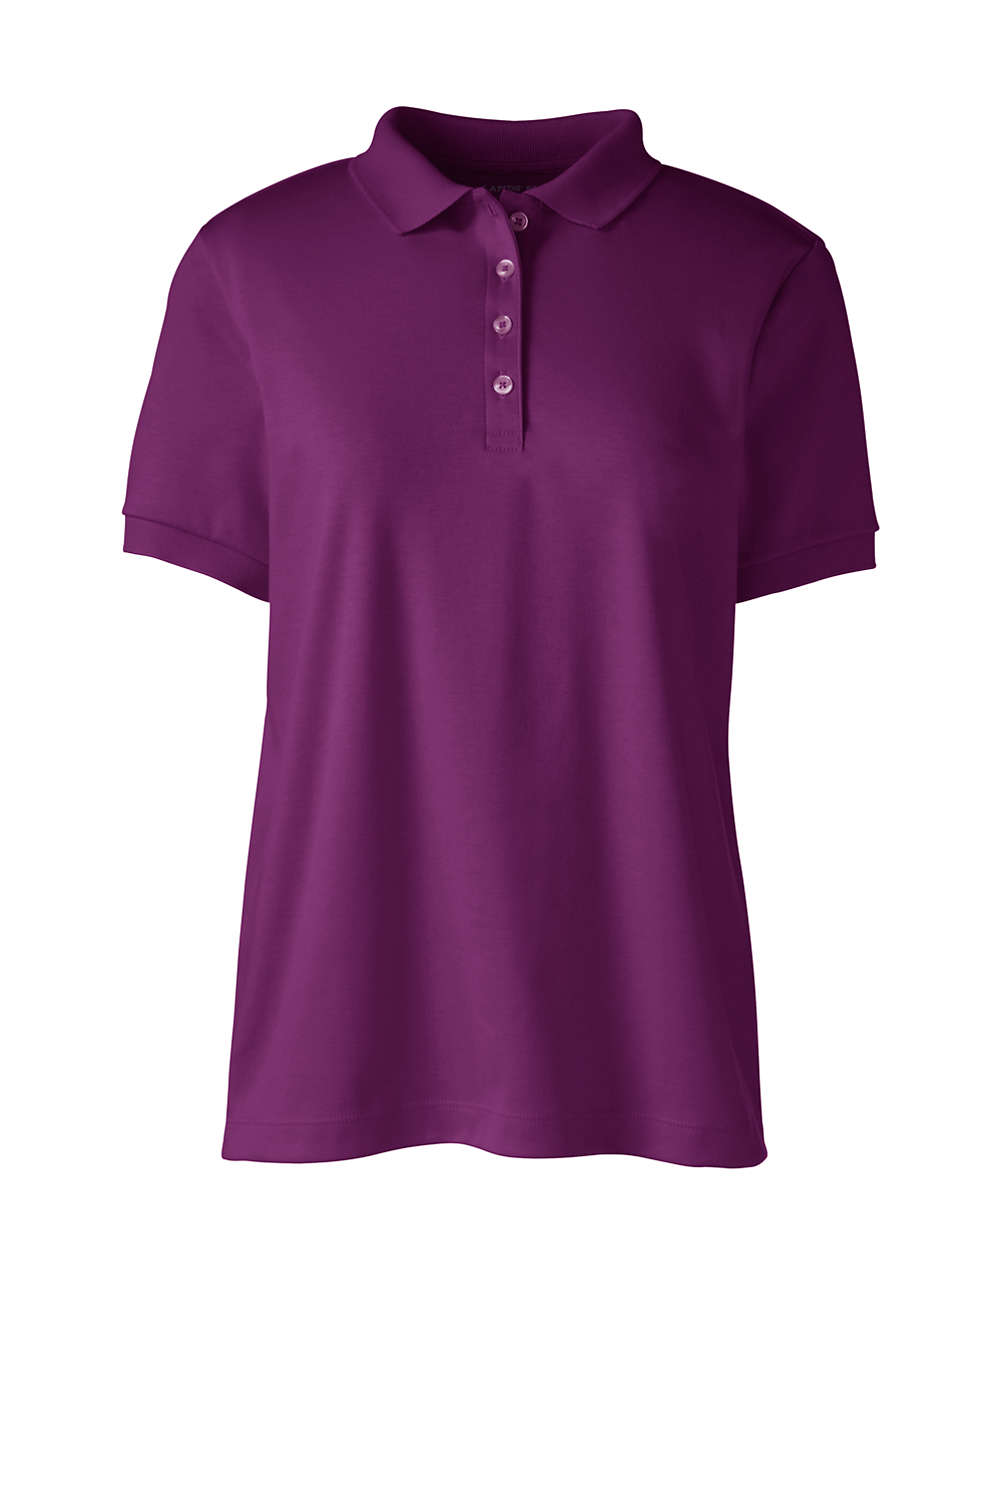 6f6cee87 Women's Feminine Fit Pima Polo from Lands' End